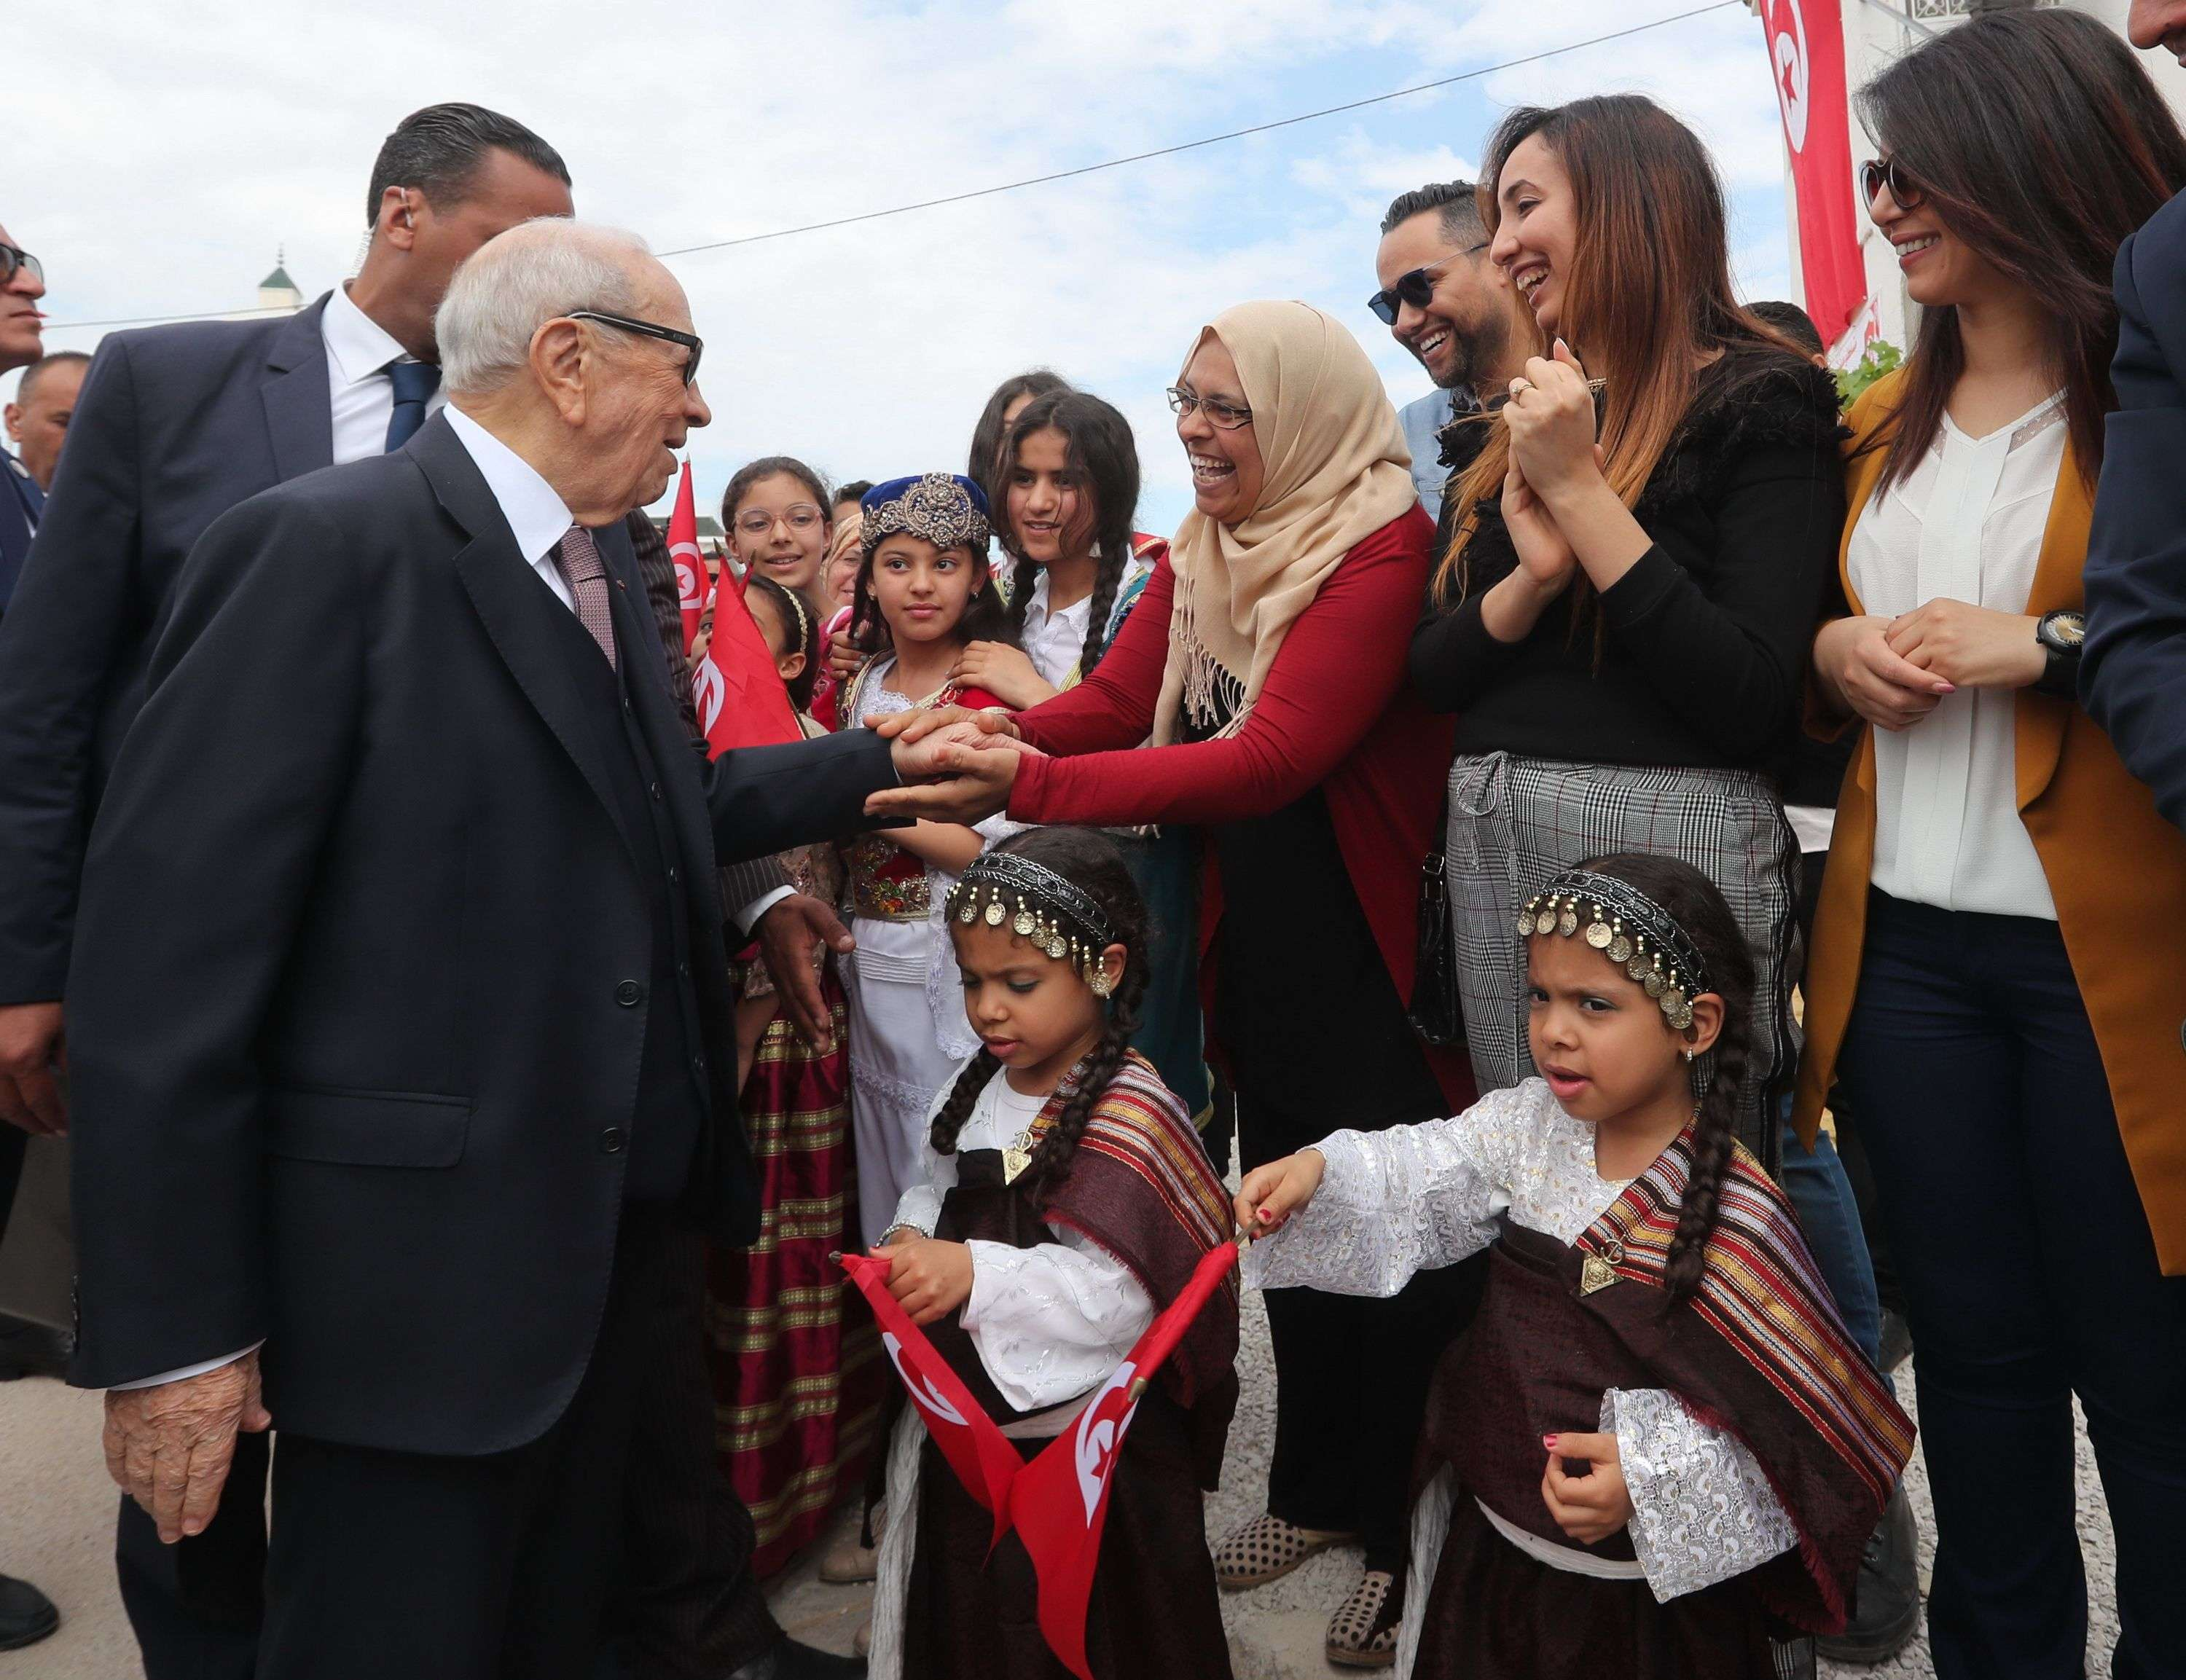 Tunisian President Beji Caid Essebsi greets people upon his arrival to cast his vote at a polling station in Soukra, on May 6. (AFP)